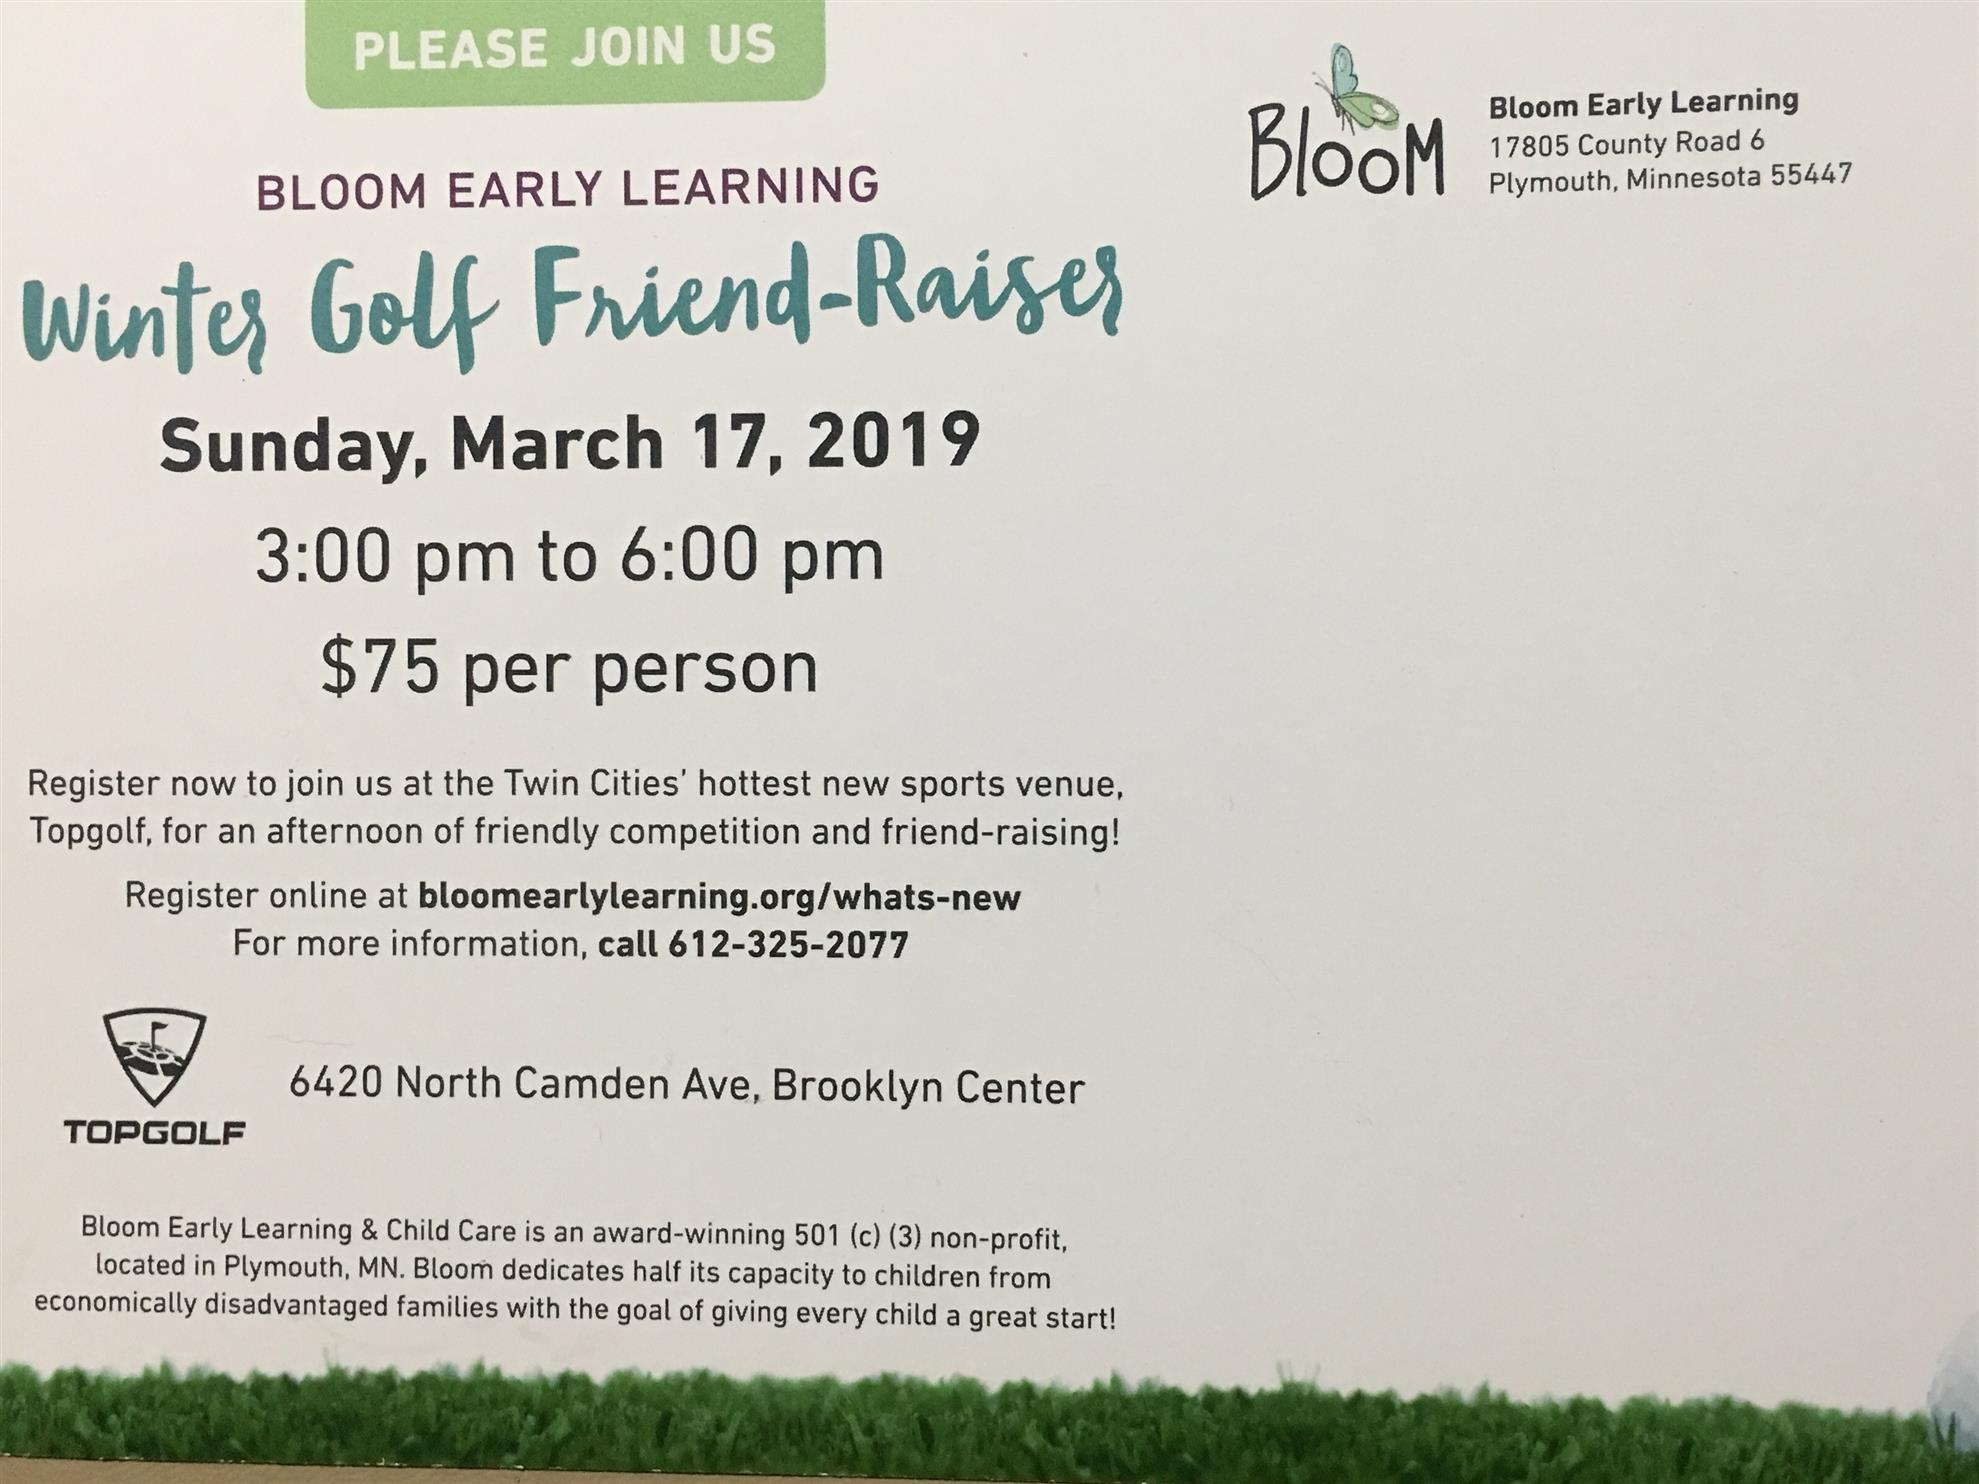 Bloom Early Learning & Childcare Friend-Raiser - March 17, 2019